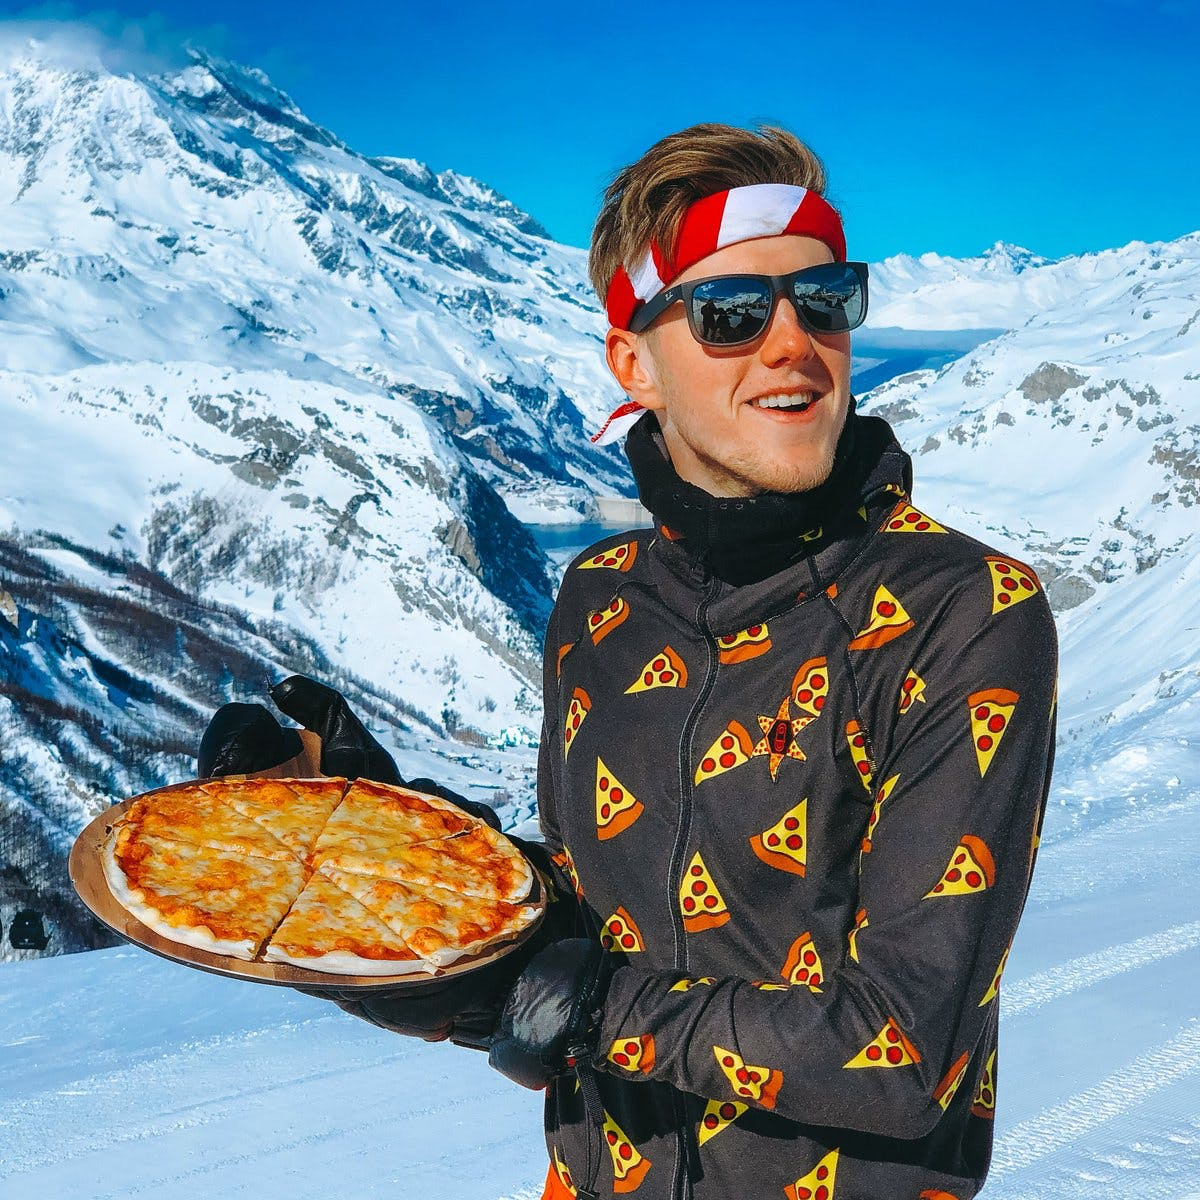 Lachlan in Val-d'Isère, France, holding a Pizza